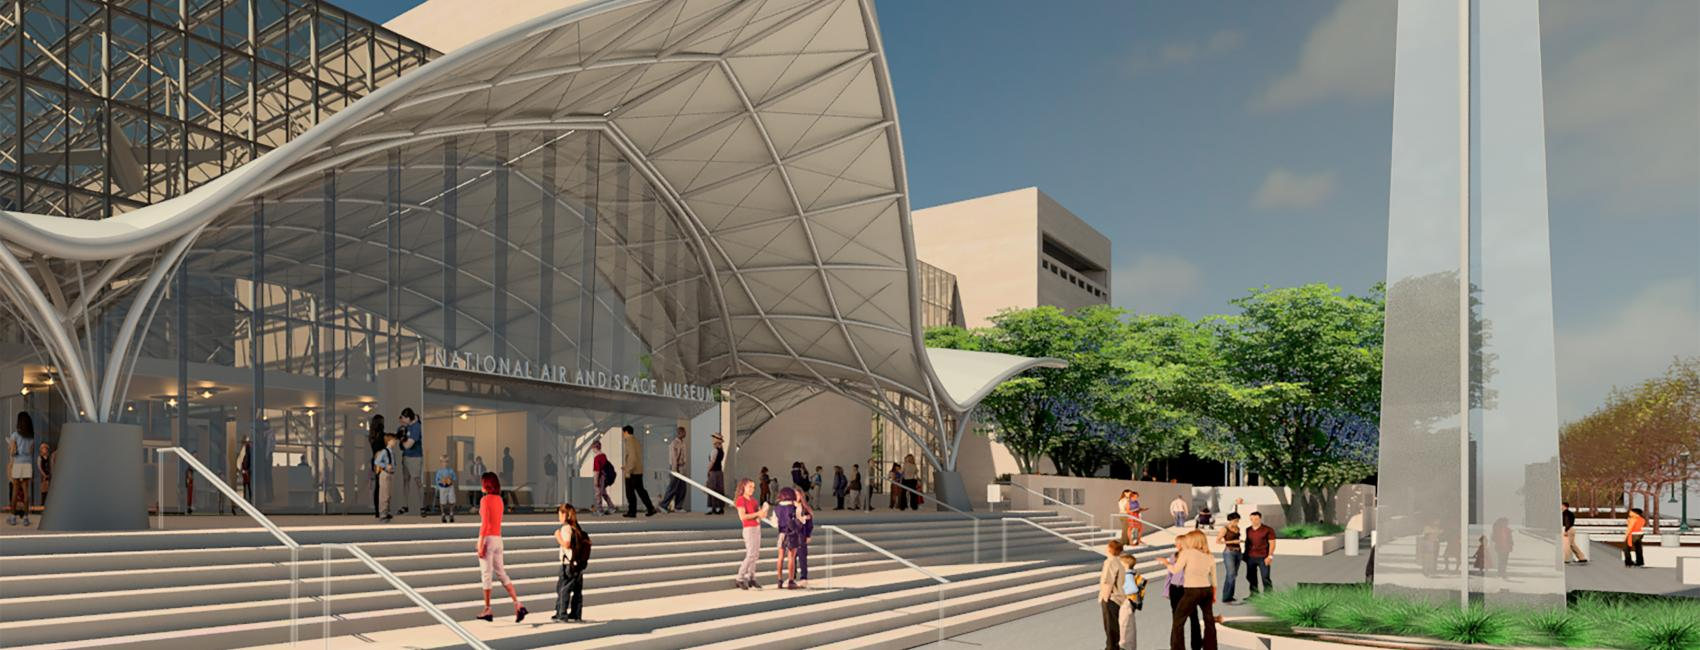 Rendering of Museum's Exterior after Transformation